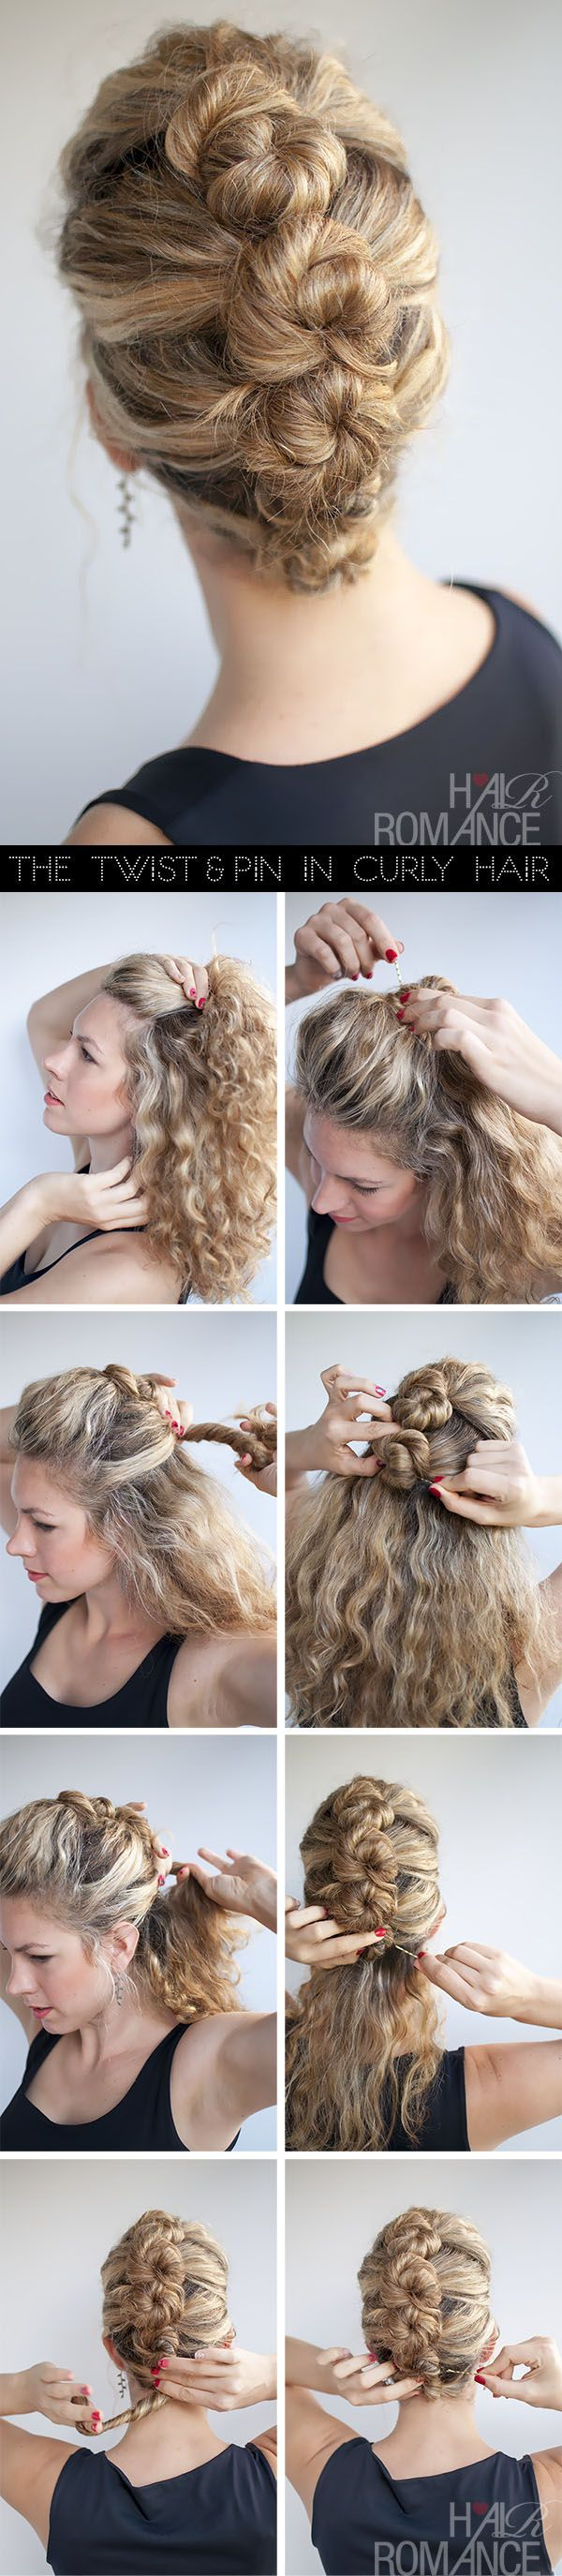 Hair Romance hairstyle tutorial - The French Twist and Pin in curly hair -- I could only wish for hair this thick and lovely.  My hair and this style would look like I had blonde pimples on my head.  :\